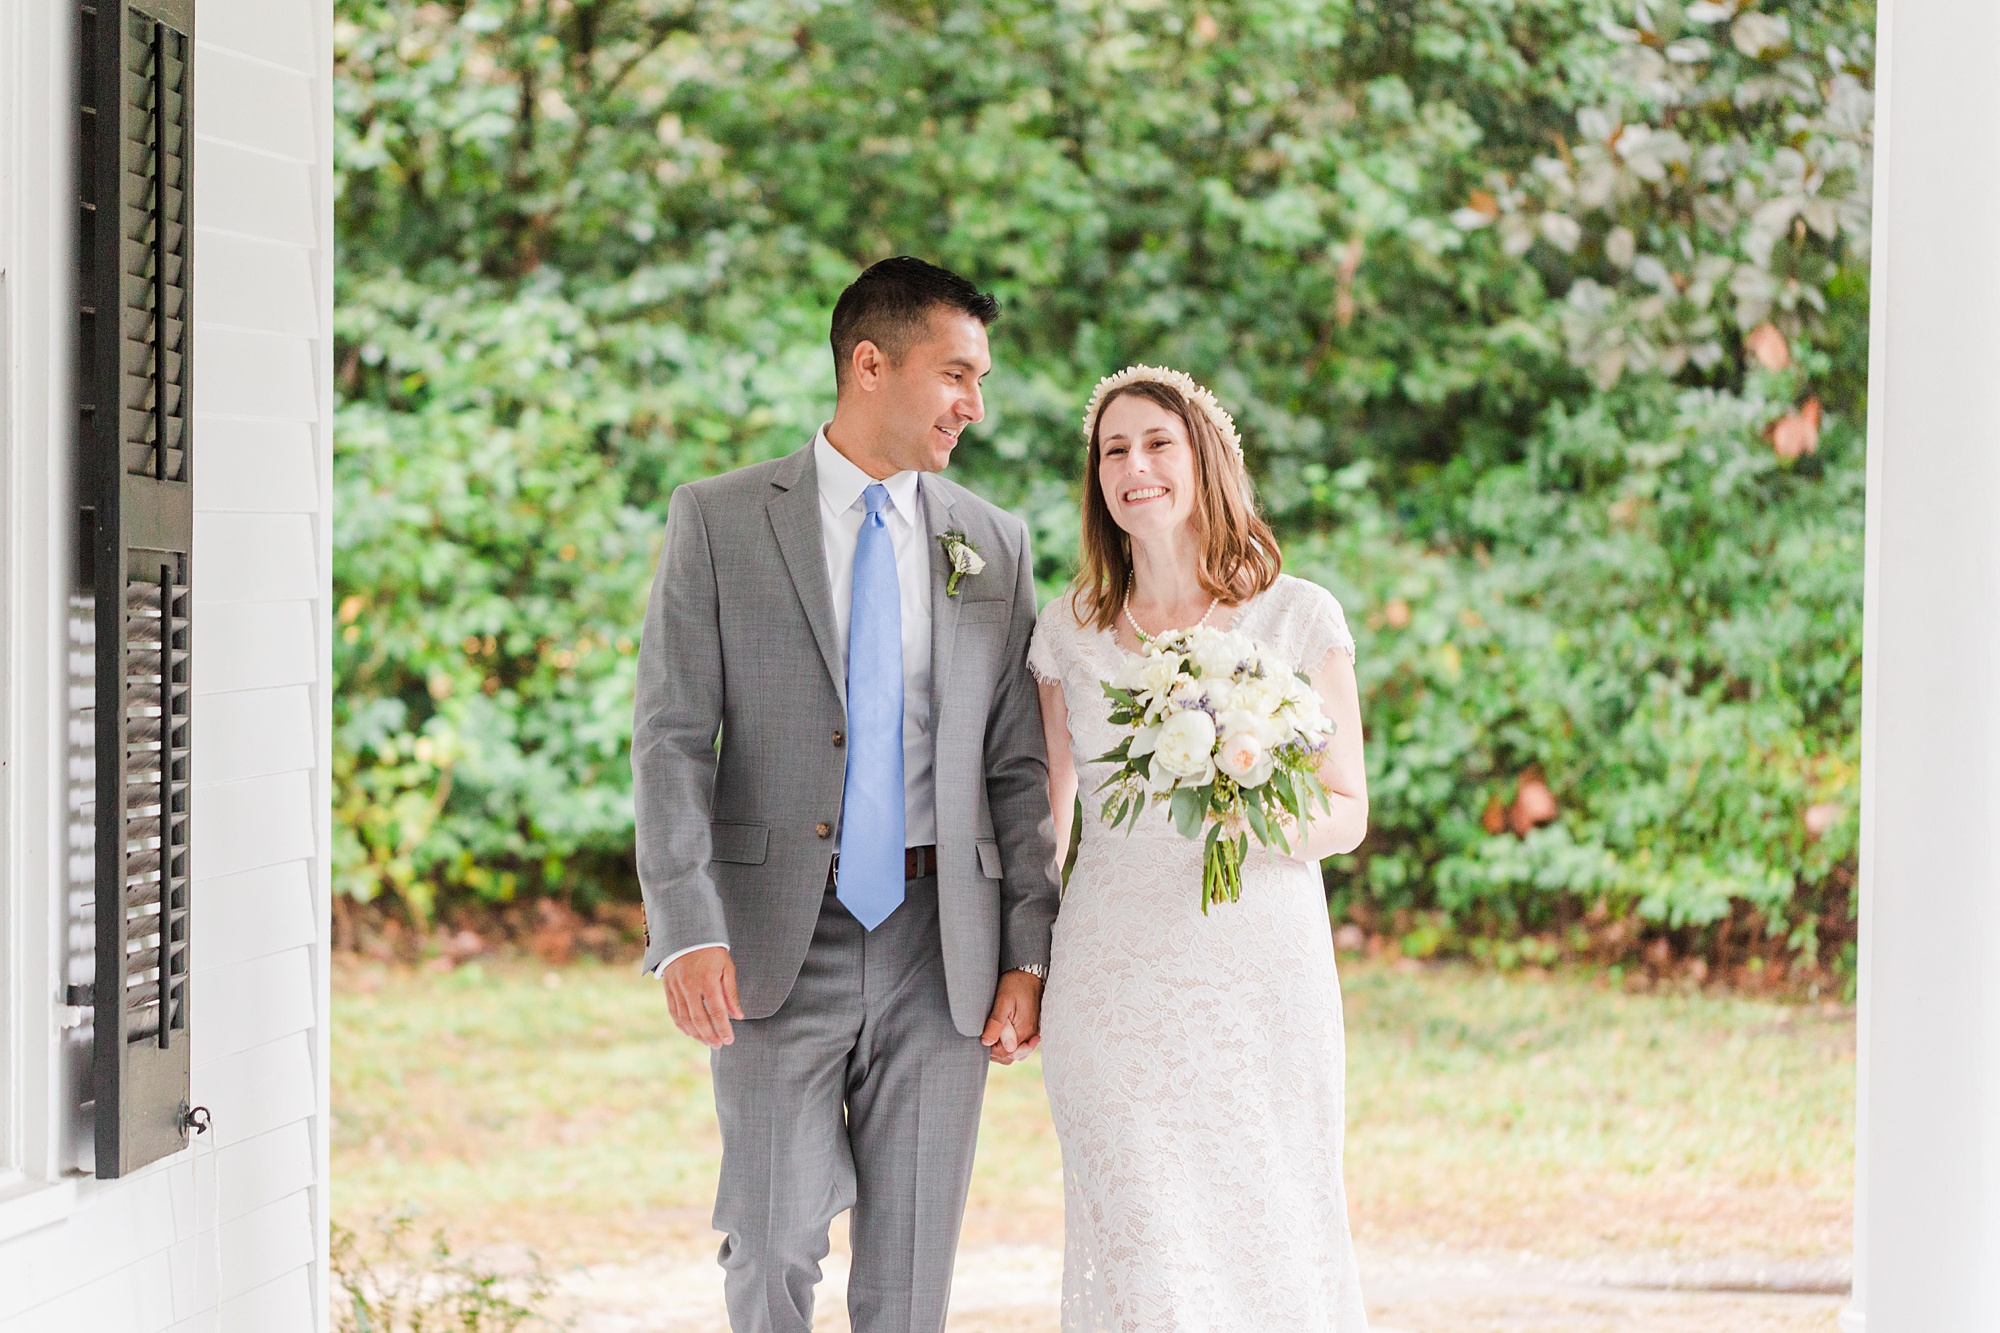 newlyweds walk on front porch during intimate Springhill wedding day